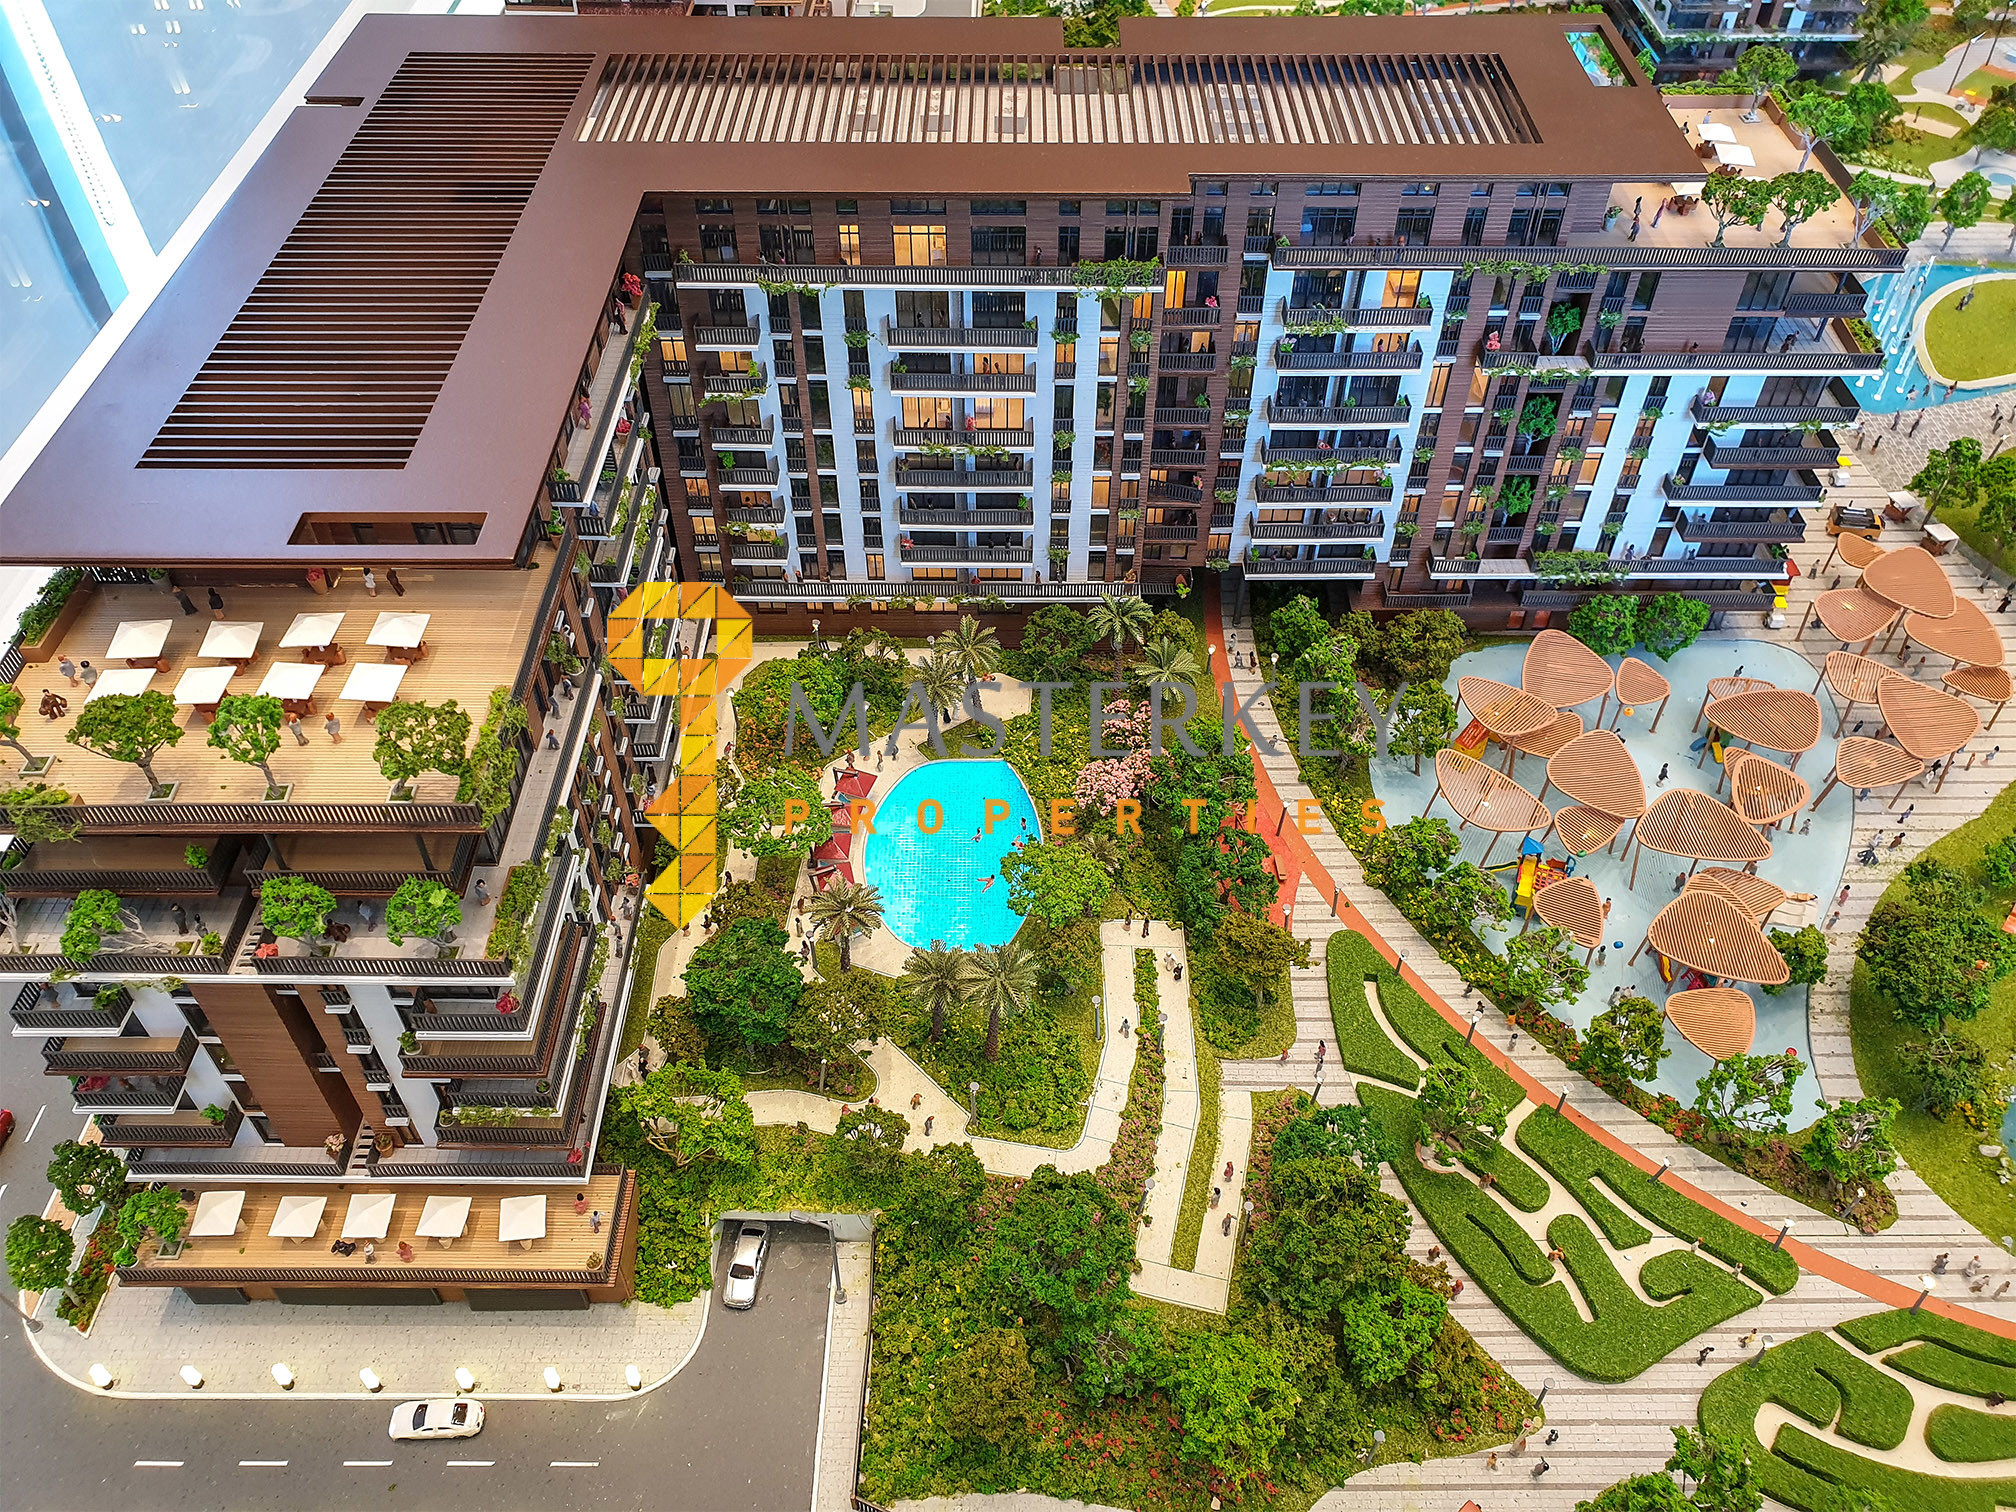 Central Park|5% Booking|40-60 Payment Plan